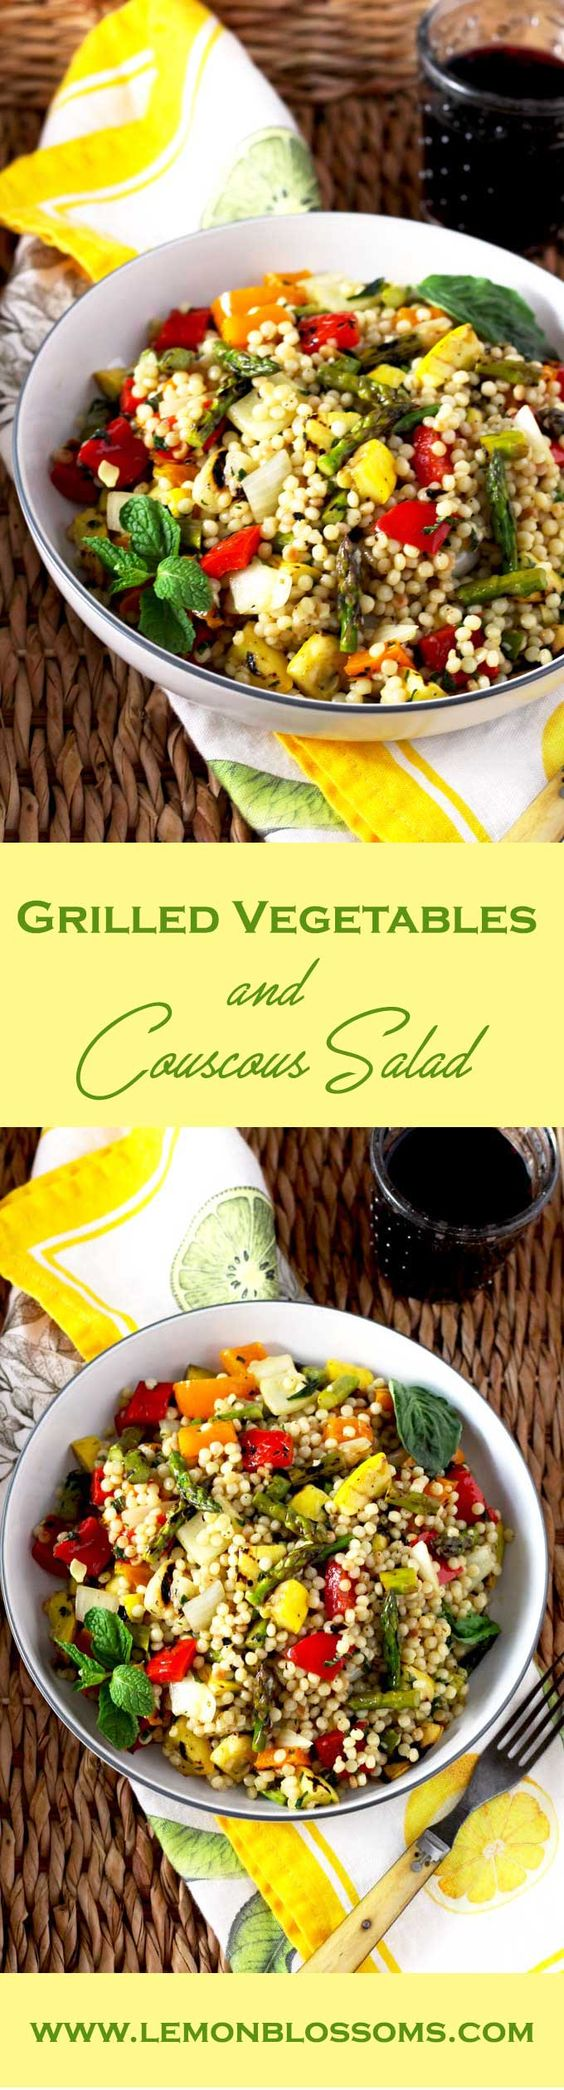 Balsamic marinated vegetables, toasted Israeli couscous, and fresh herbs are tossed in a simple and flavorful lemon vinaigrette. This Grilled Vegetables and Couscous Salad is healthy and delicious! via @https://www.pinterest.com/lmnblossoms/